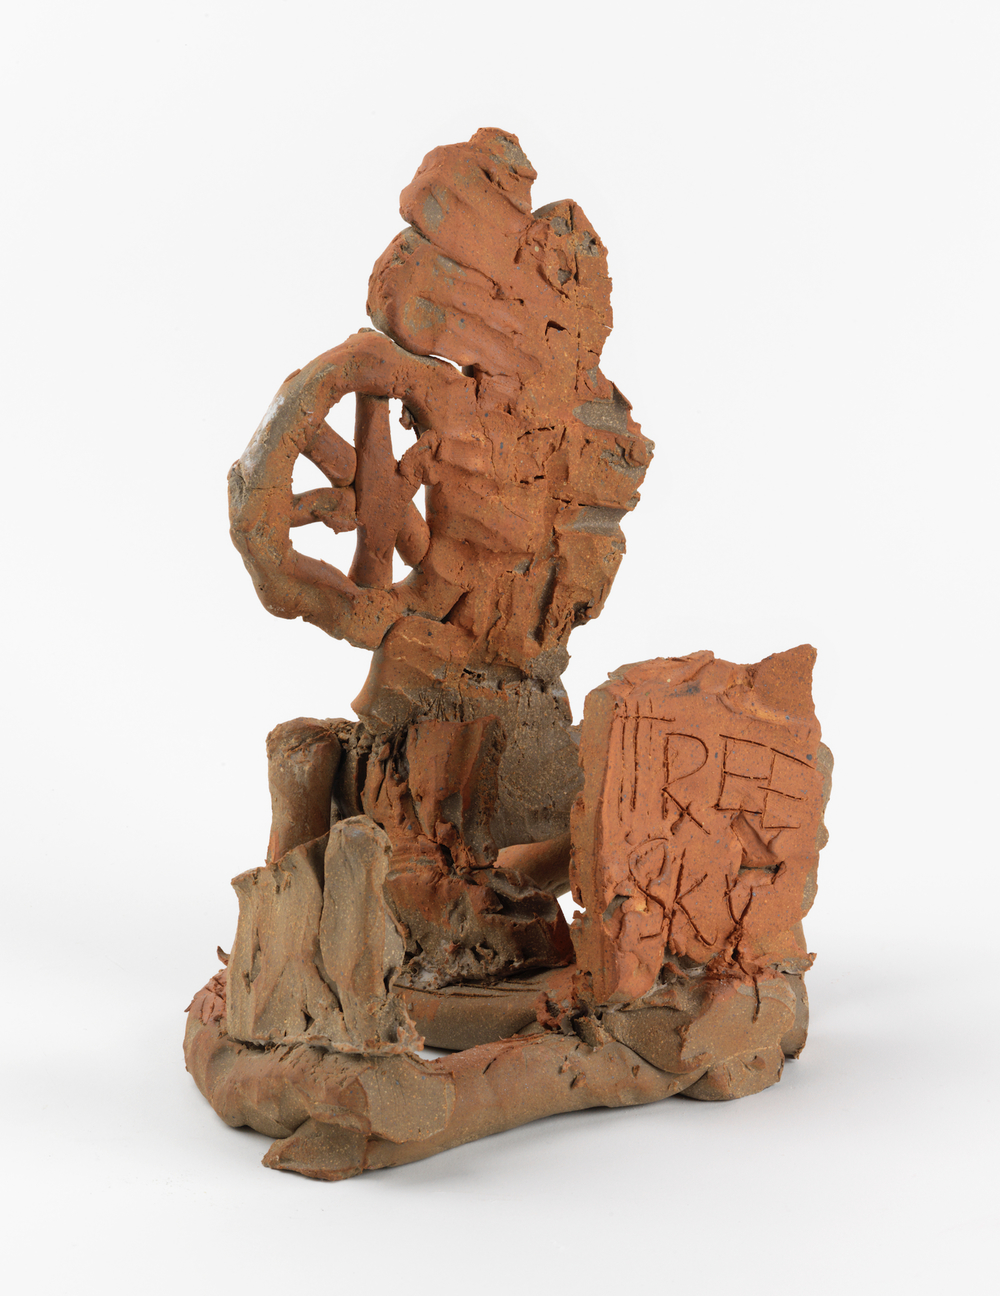 William J. O'Brien  Untitled  2011 Glazed ceramic 12h x 9 ¼w x 8 ½d in WOB730